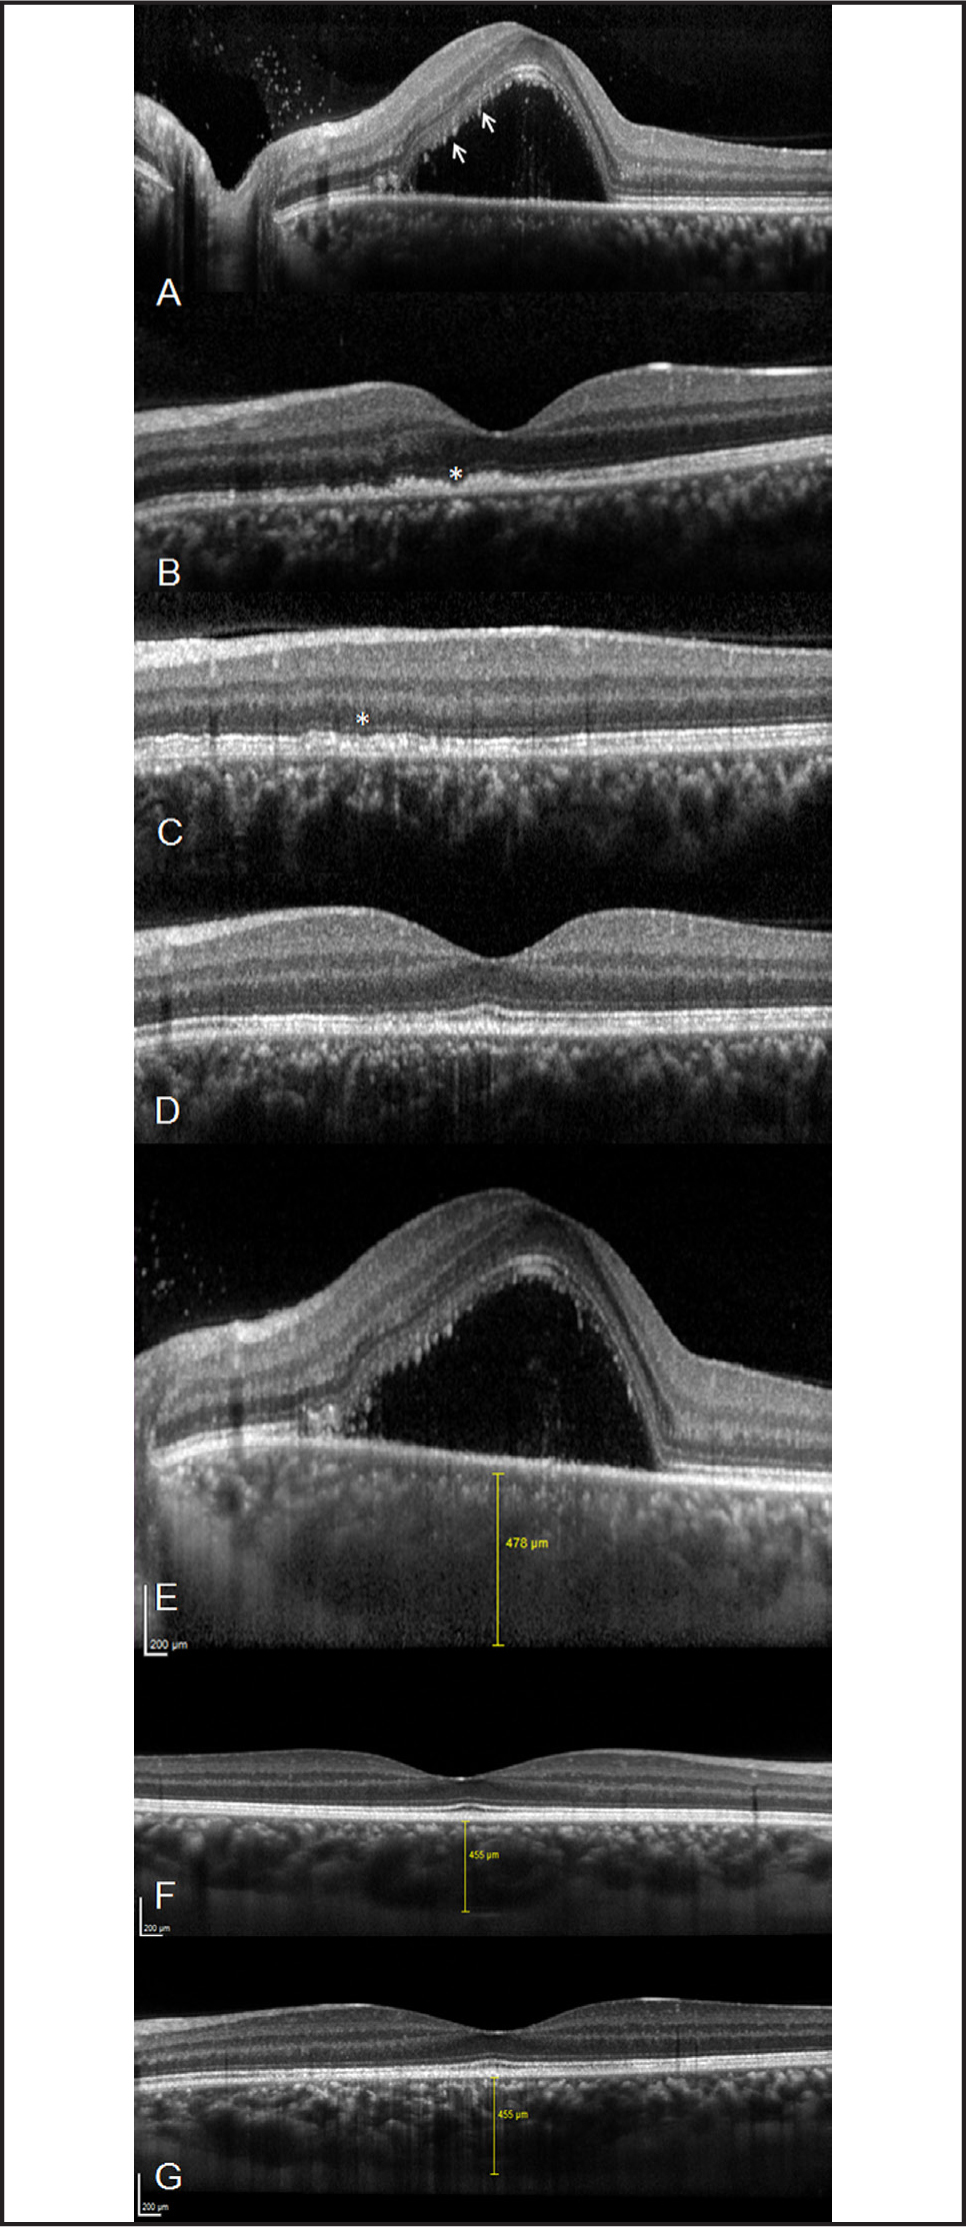 Spectral-domain OCT demonstrates neurosensory retinal detachment, with hyperreflective dots representing the outer segments of the photoreceptors (arrows) and preserved integrity of the external limiting membrane and inner retina at presentation (A). After 1 week: disruption at the level of photoreceptors (asterisk) (B). At 3-month follow-up: residual disturbance superonasally to the fovea (asterisk) (C), being the fovea reconstituted (D). Enhanced depth imaging OCT of the left eye at presentation demonstrated increased subfoveal choroidal thickness (E), which decreased at 3 months in the right (F) and left (G) eyes.